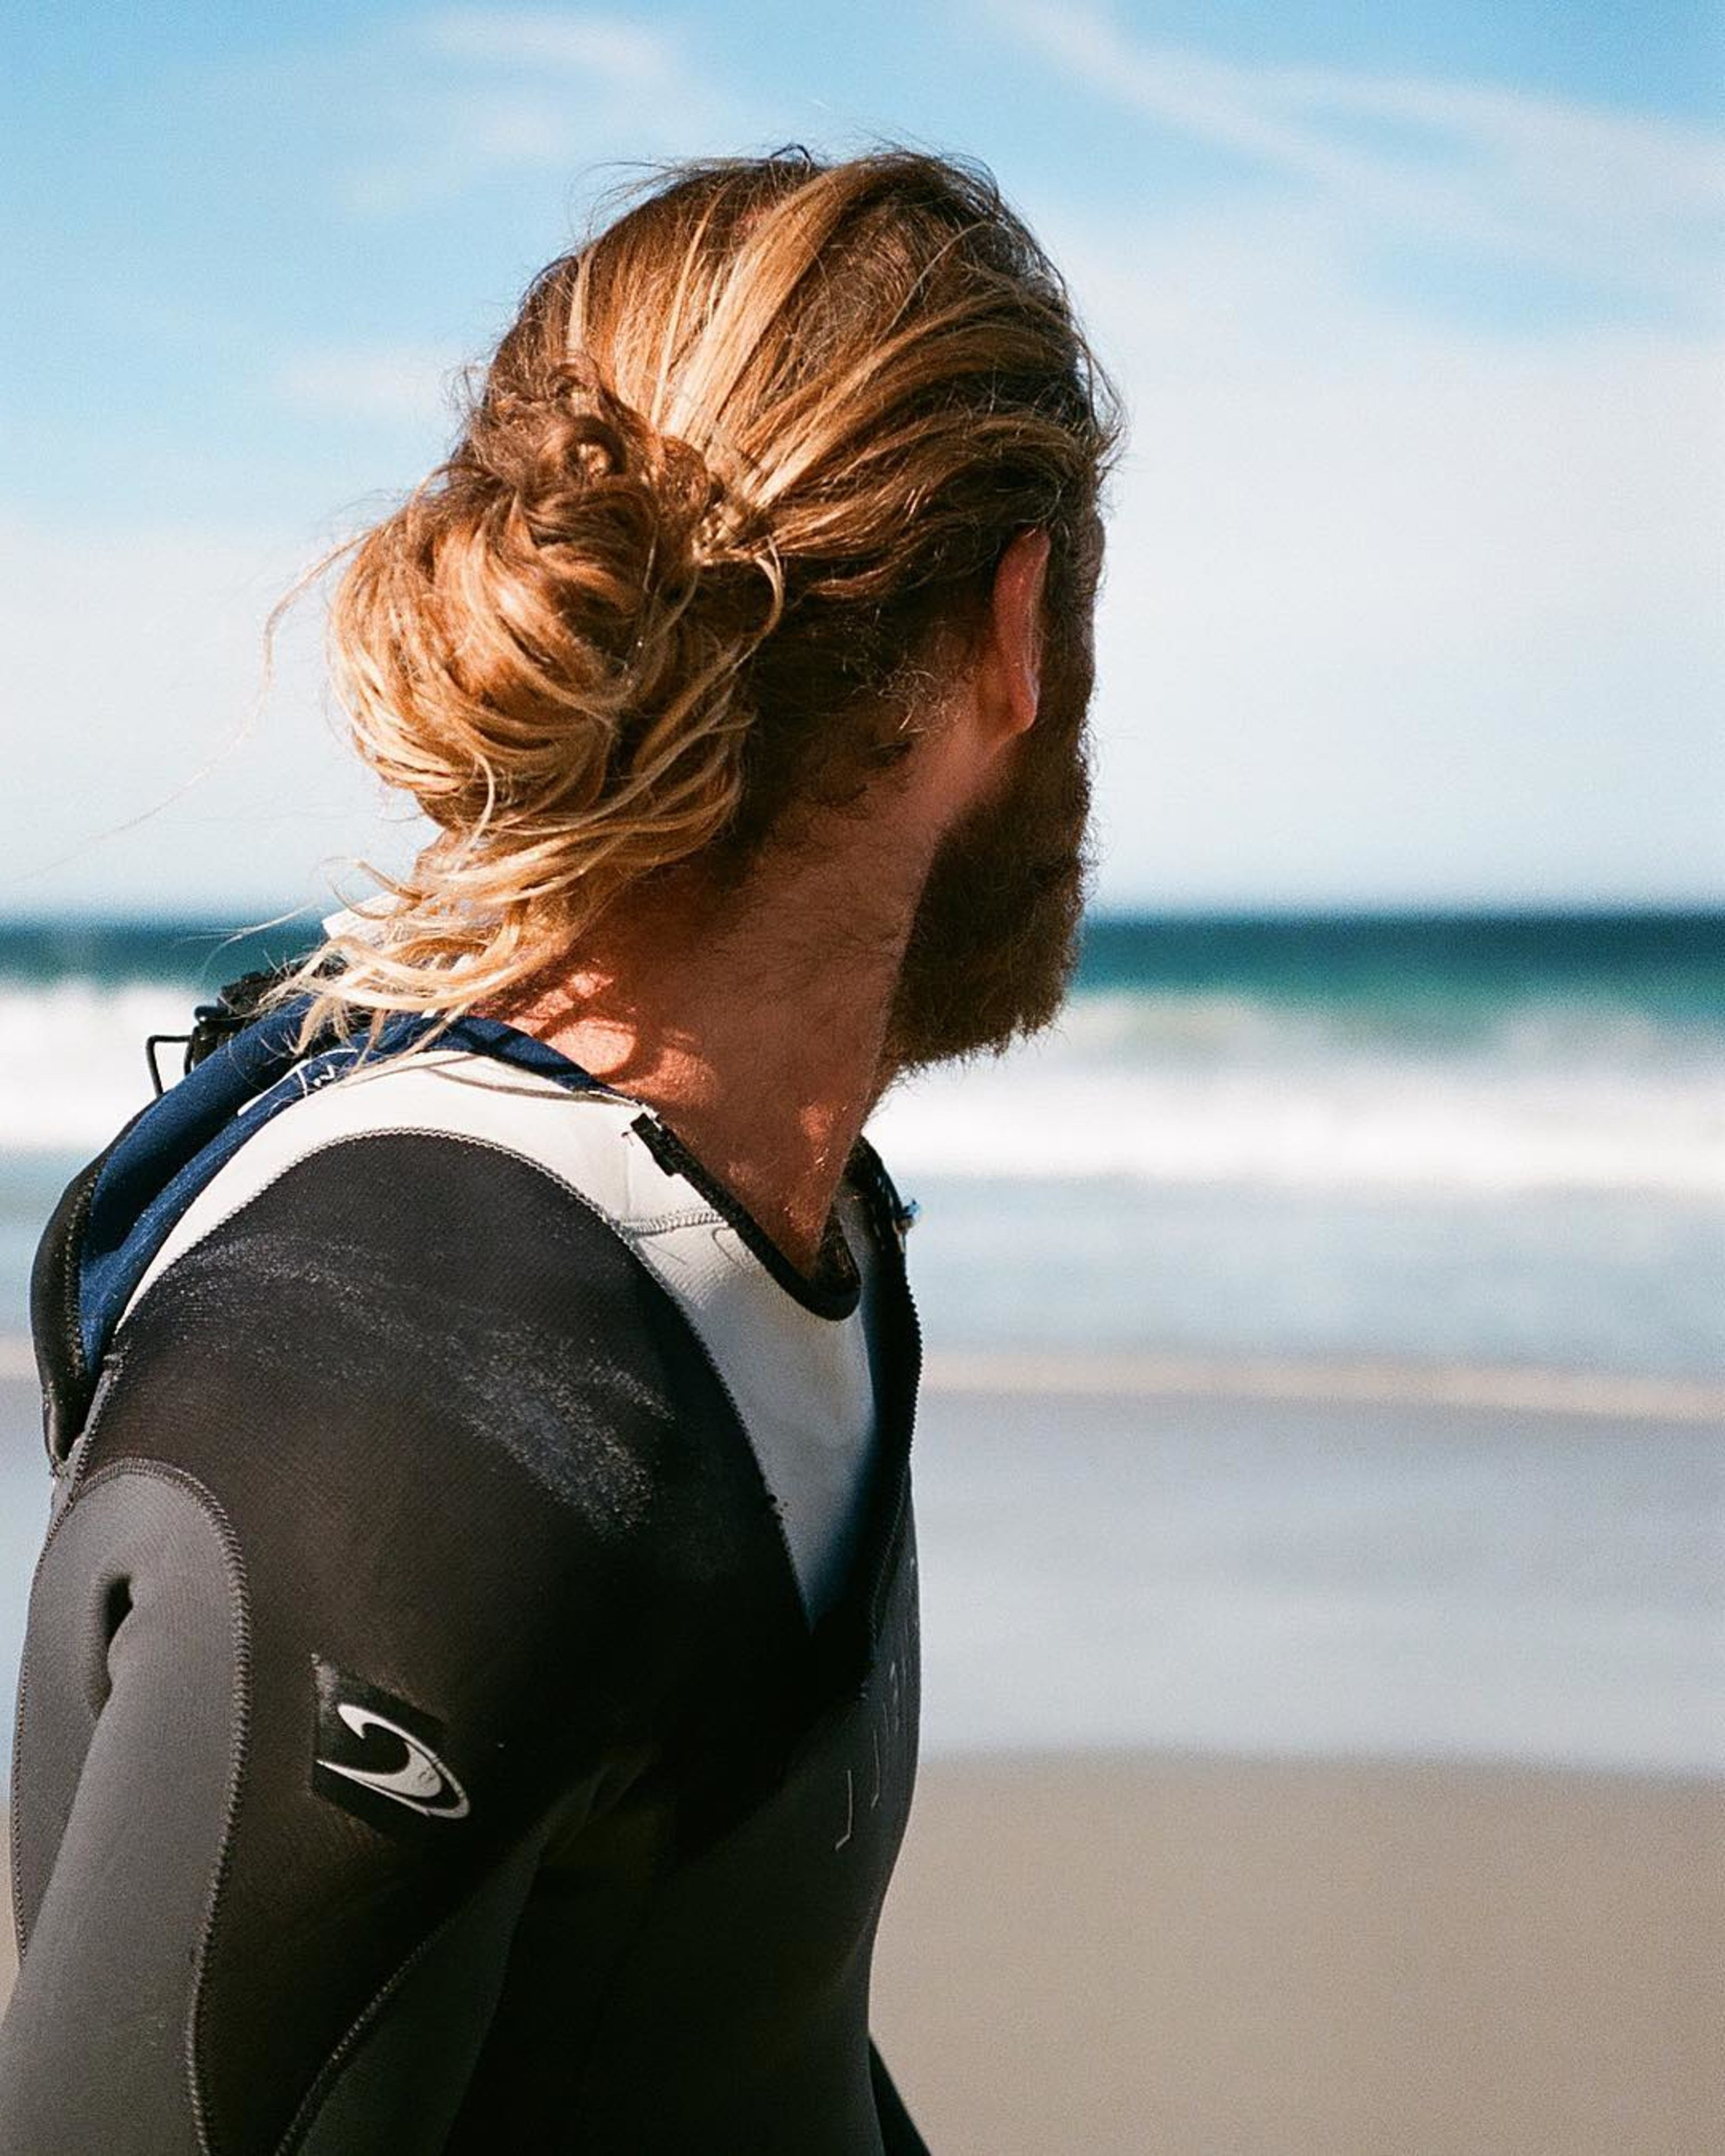 A male bun in the surfer style.